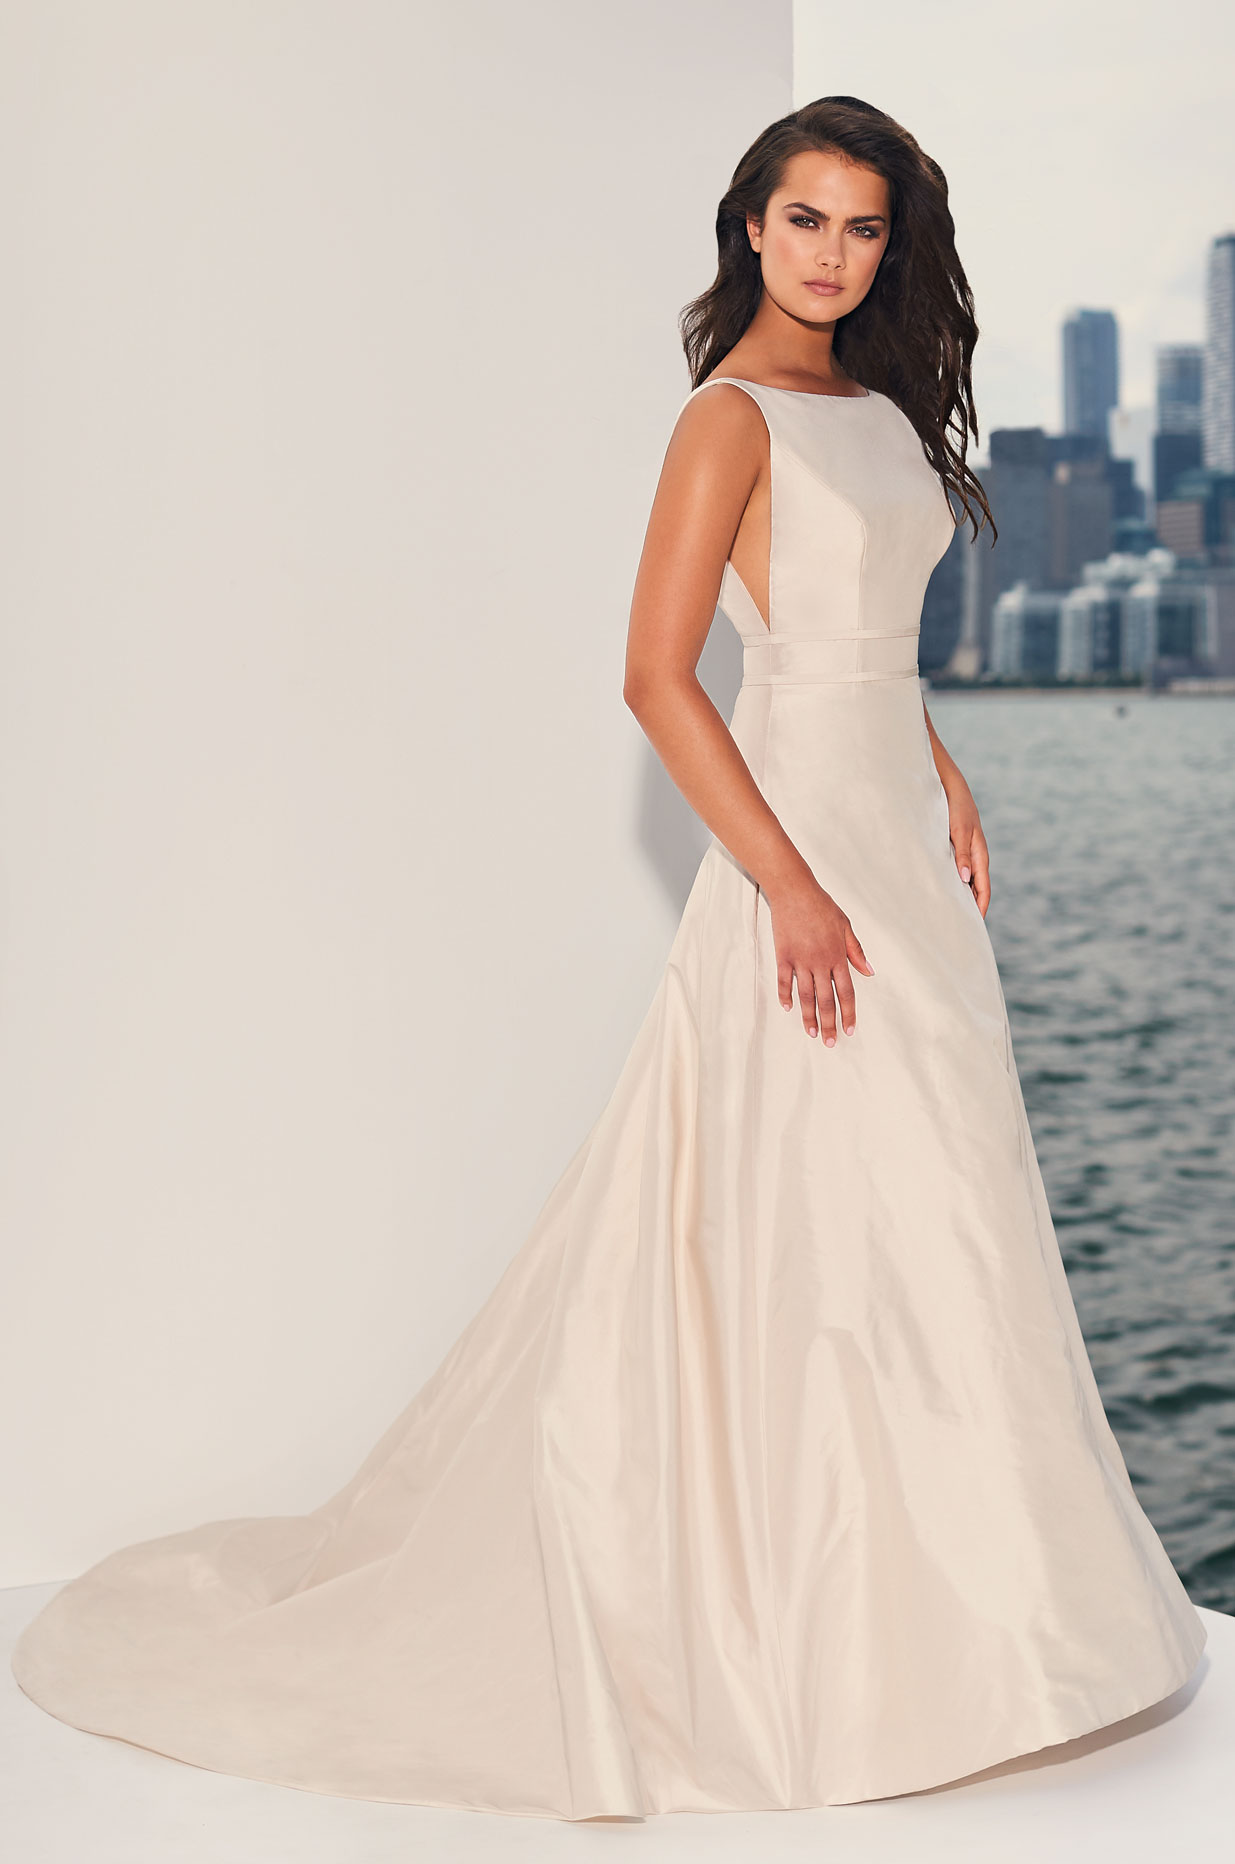 Polished Boat Neckline Wedding Dress - Style #4832 | Paloma Blanca